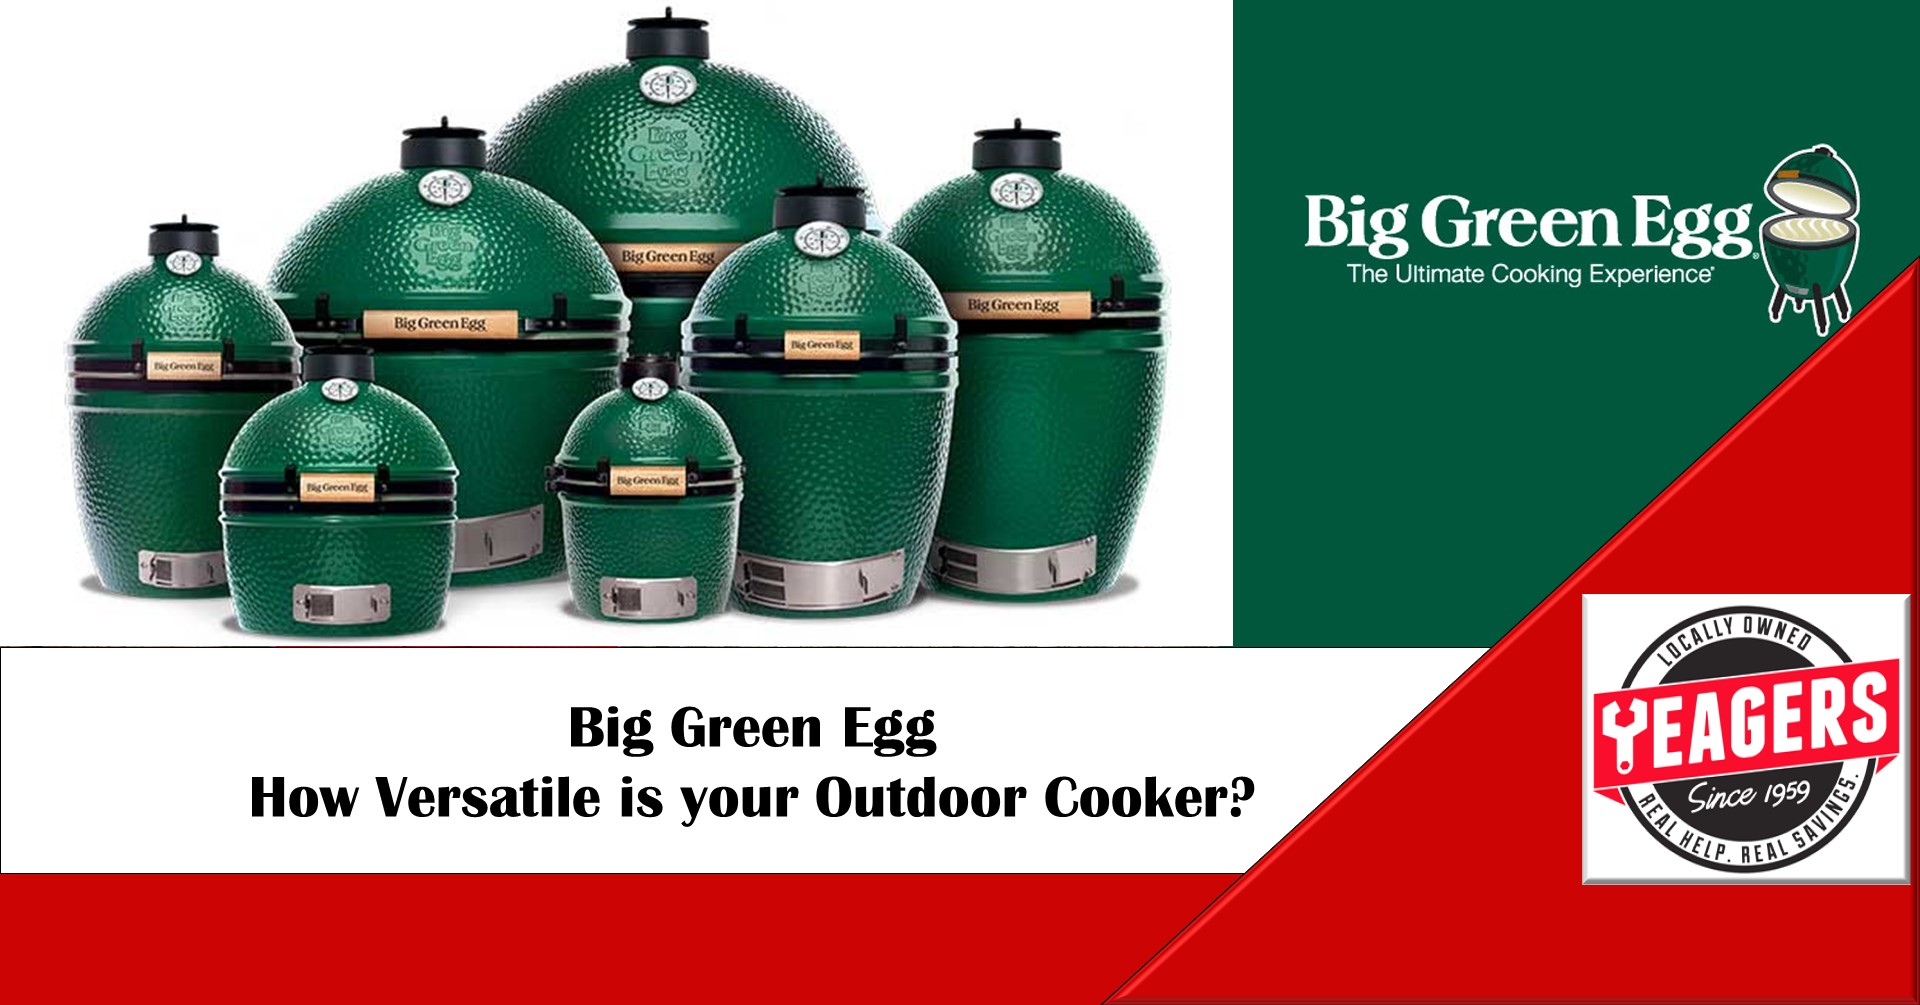 The Big Green Egg is a Big Deal